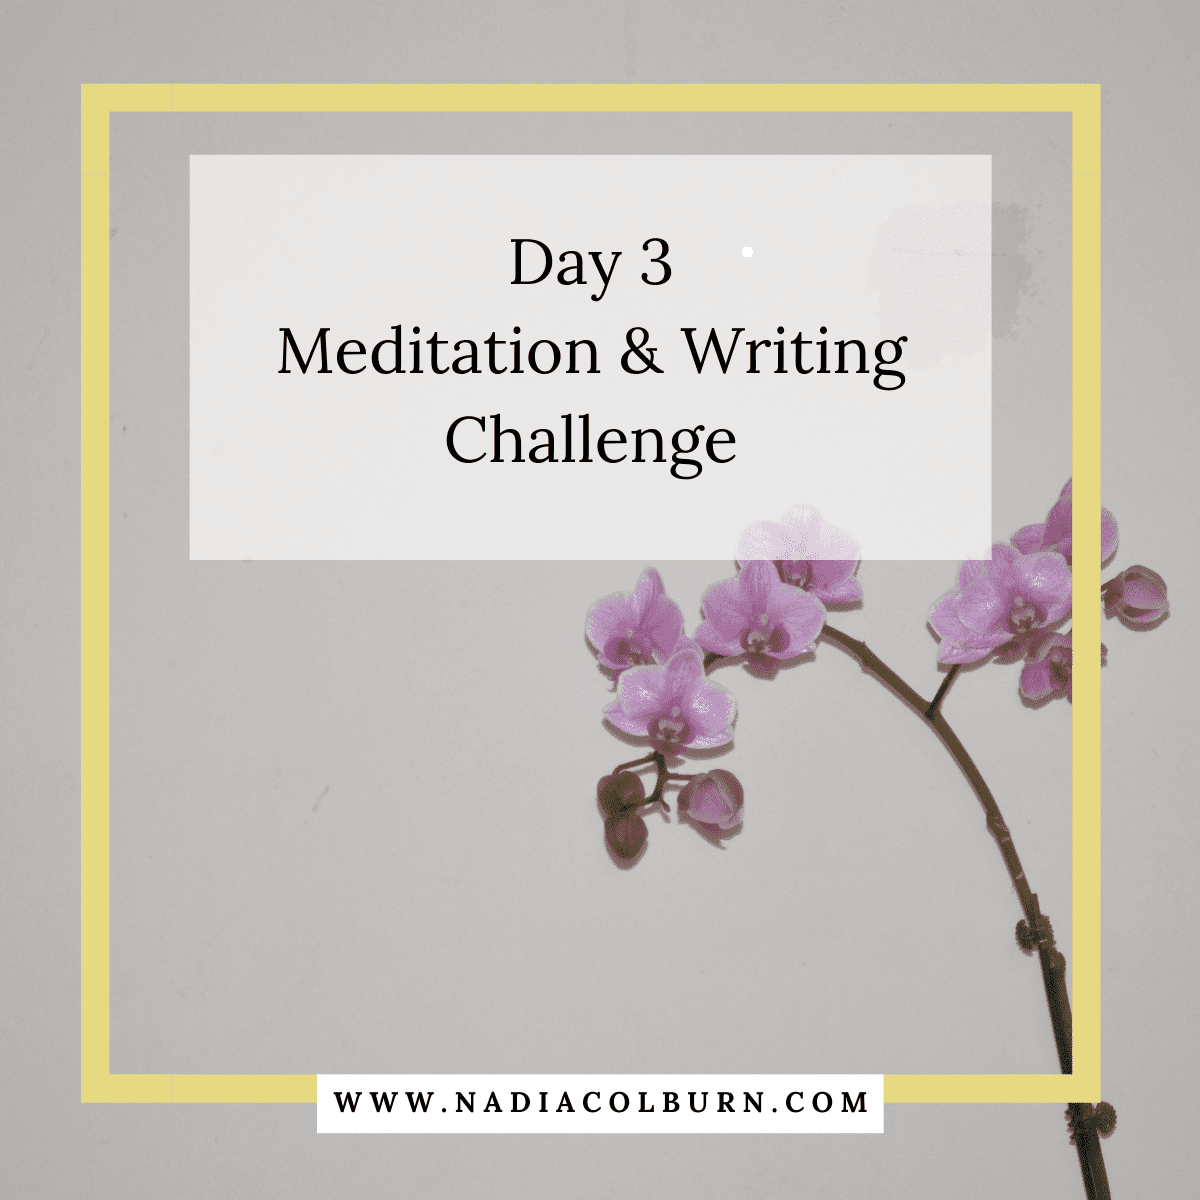 2021 meditation and writing challenge day 5 6